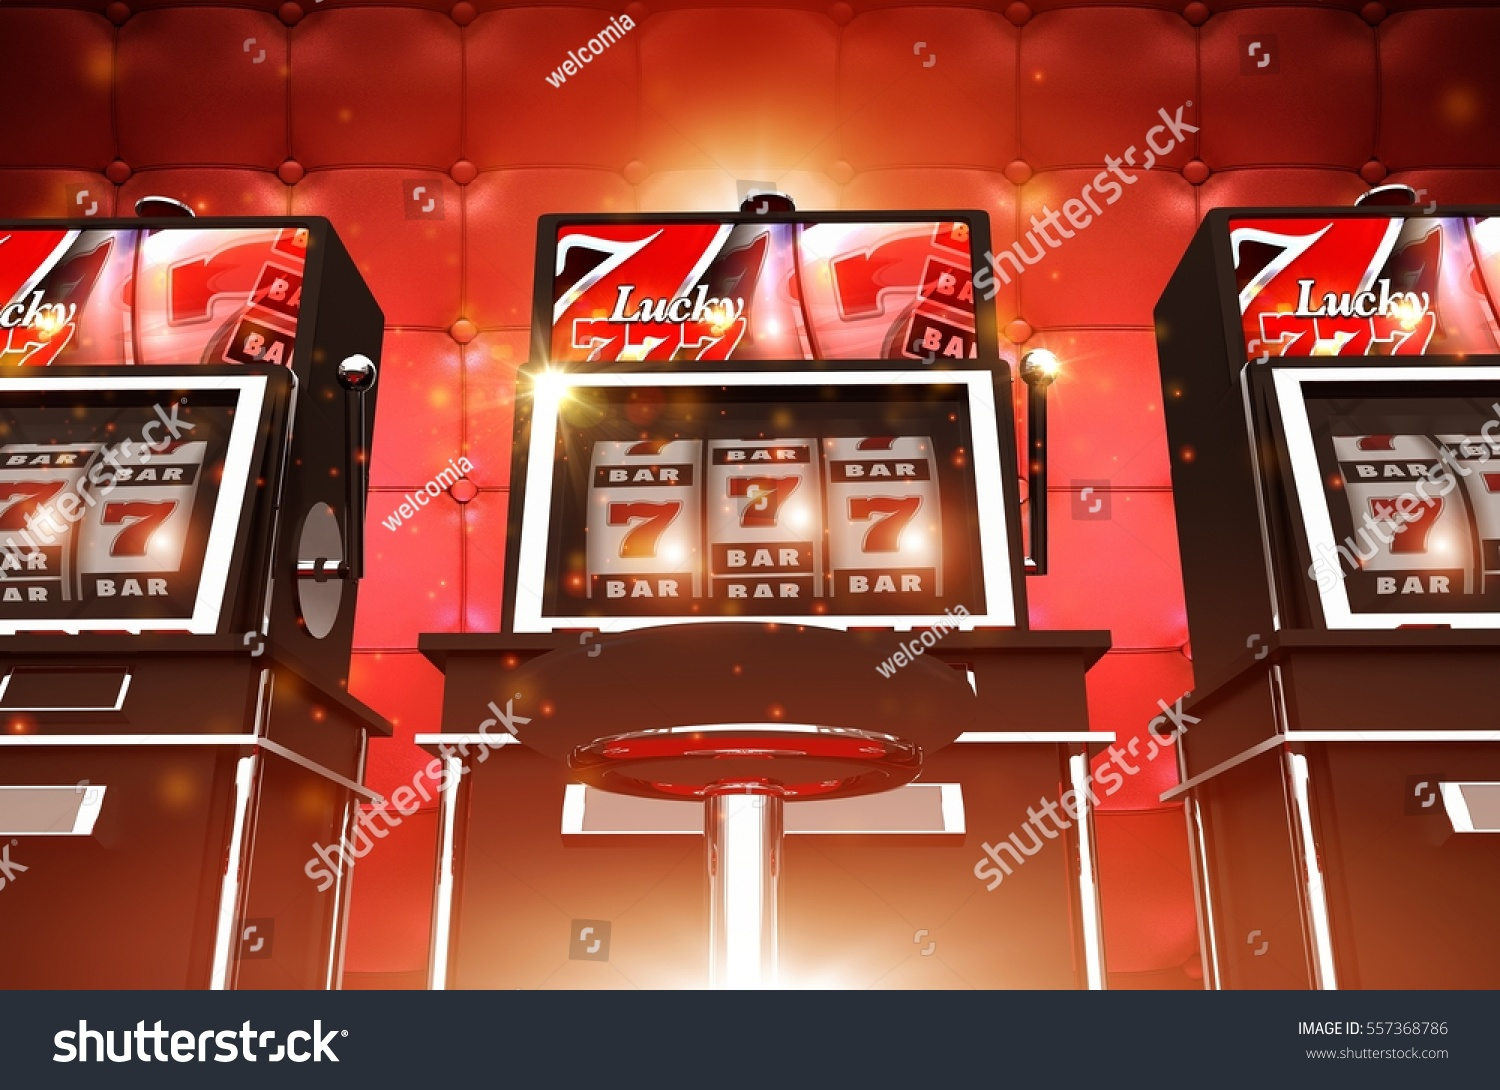 Bar casino gaming style state law on internet gambling